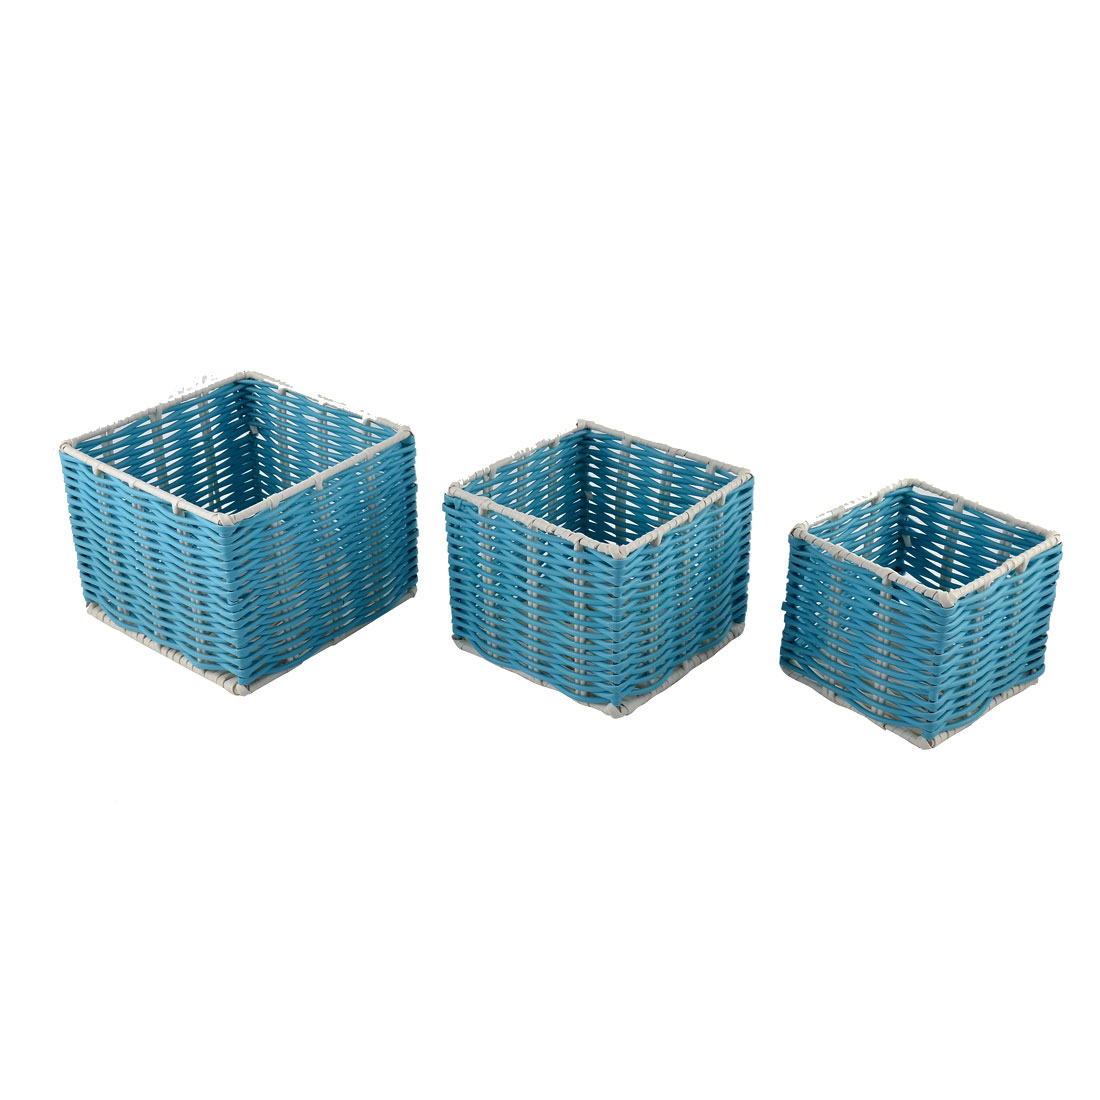 School Office Plastic Fance Design Hollow Storage Basket Container Blue 3 in 1